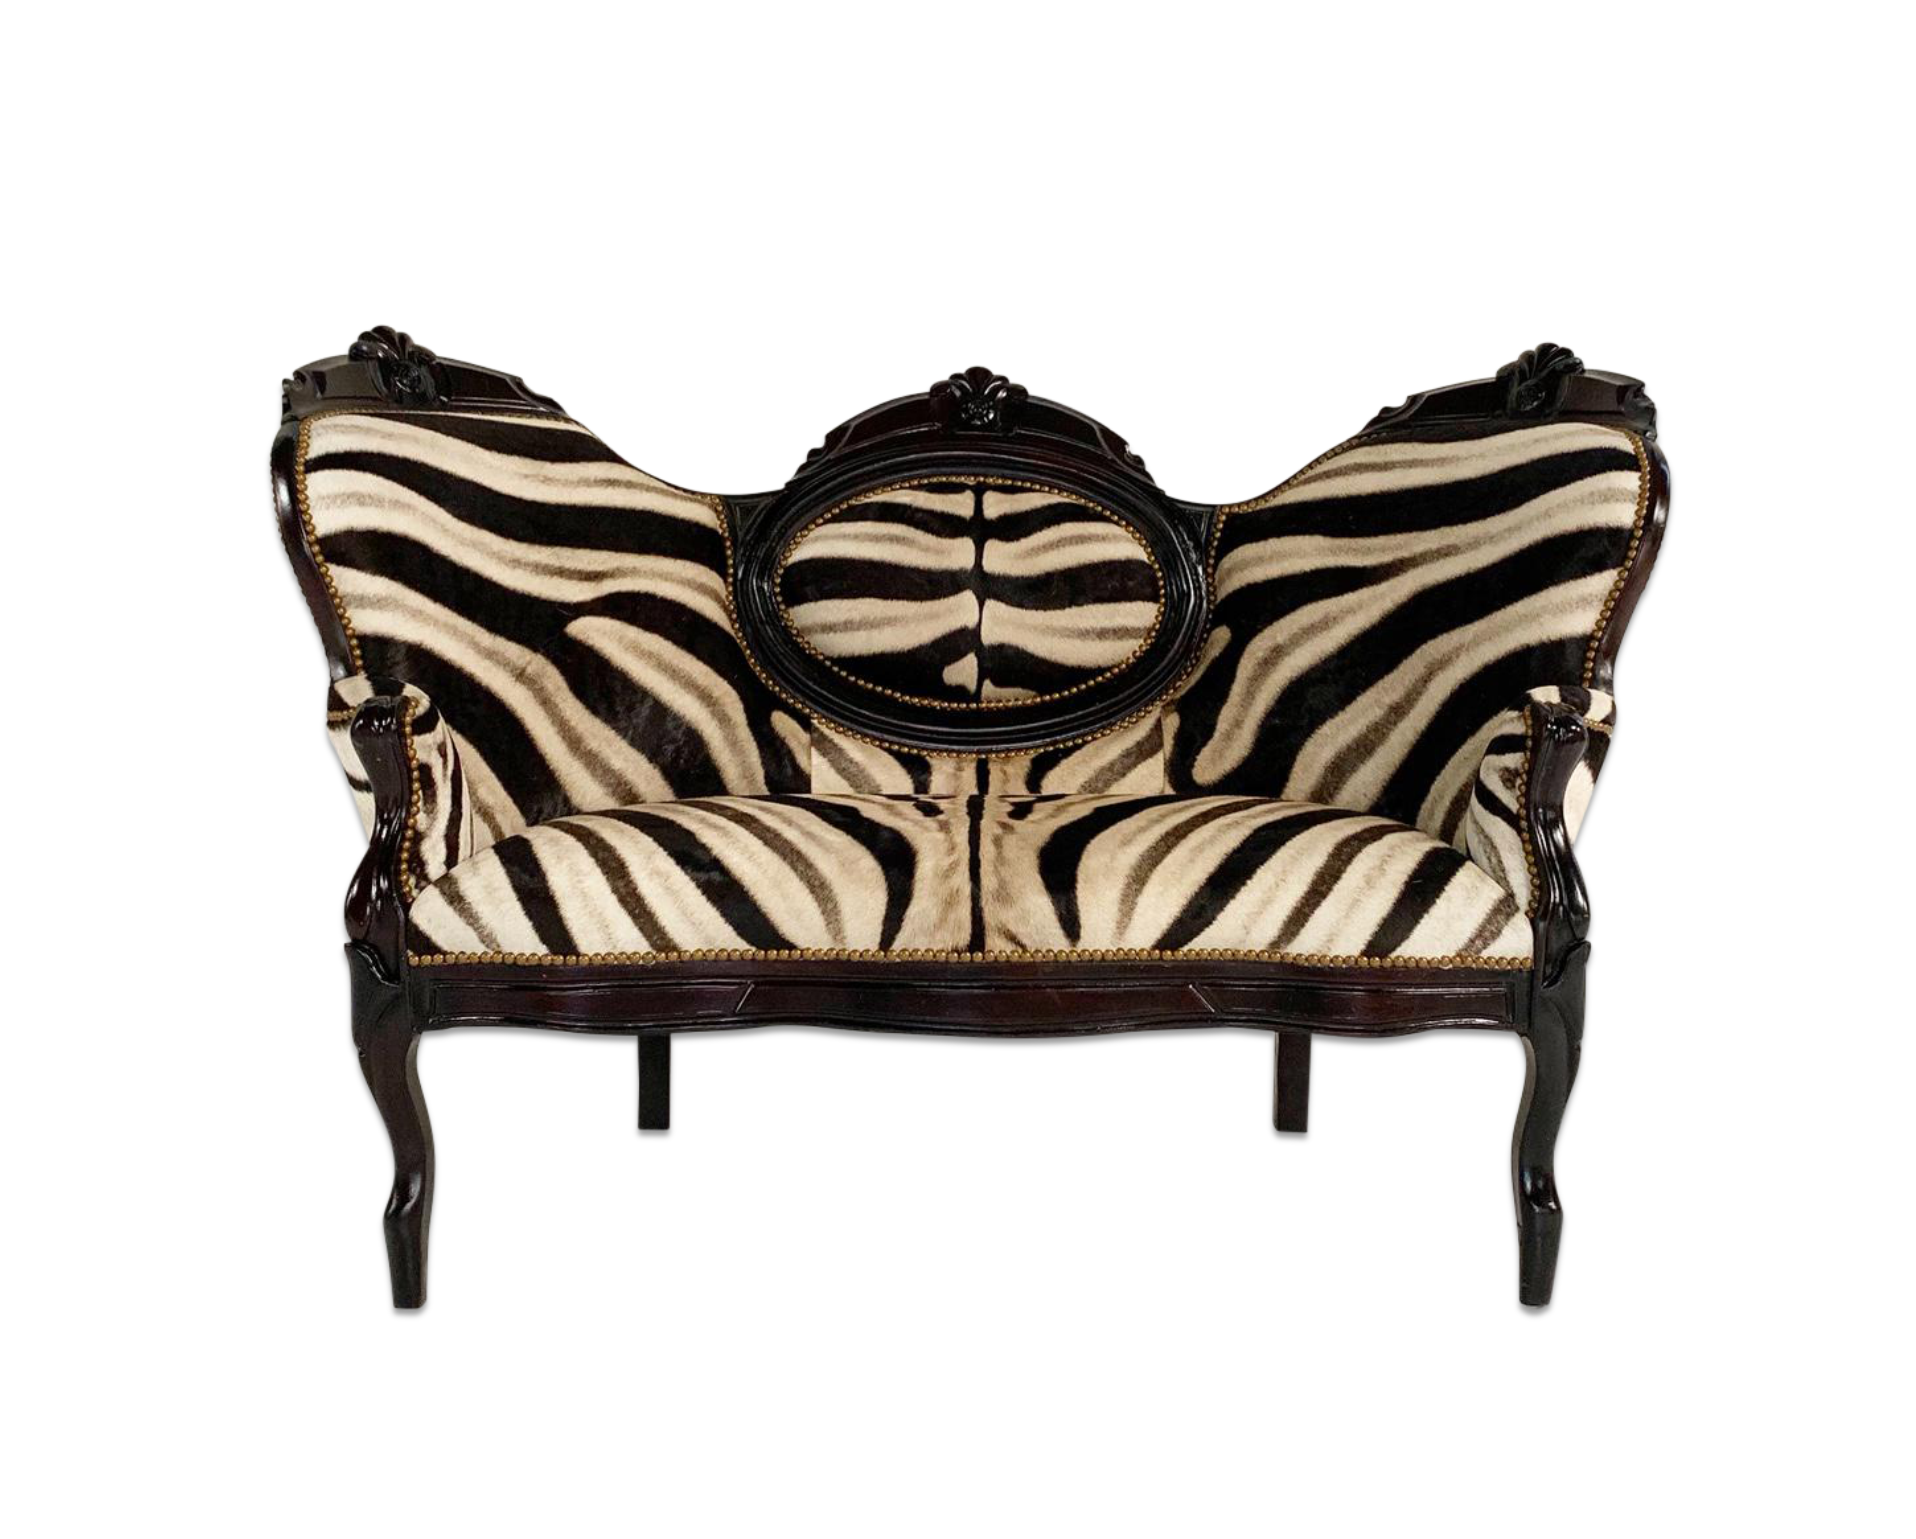 Antique Settee in Zebra Hide - FORSYTH